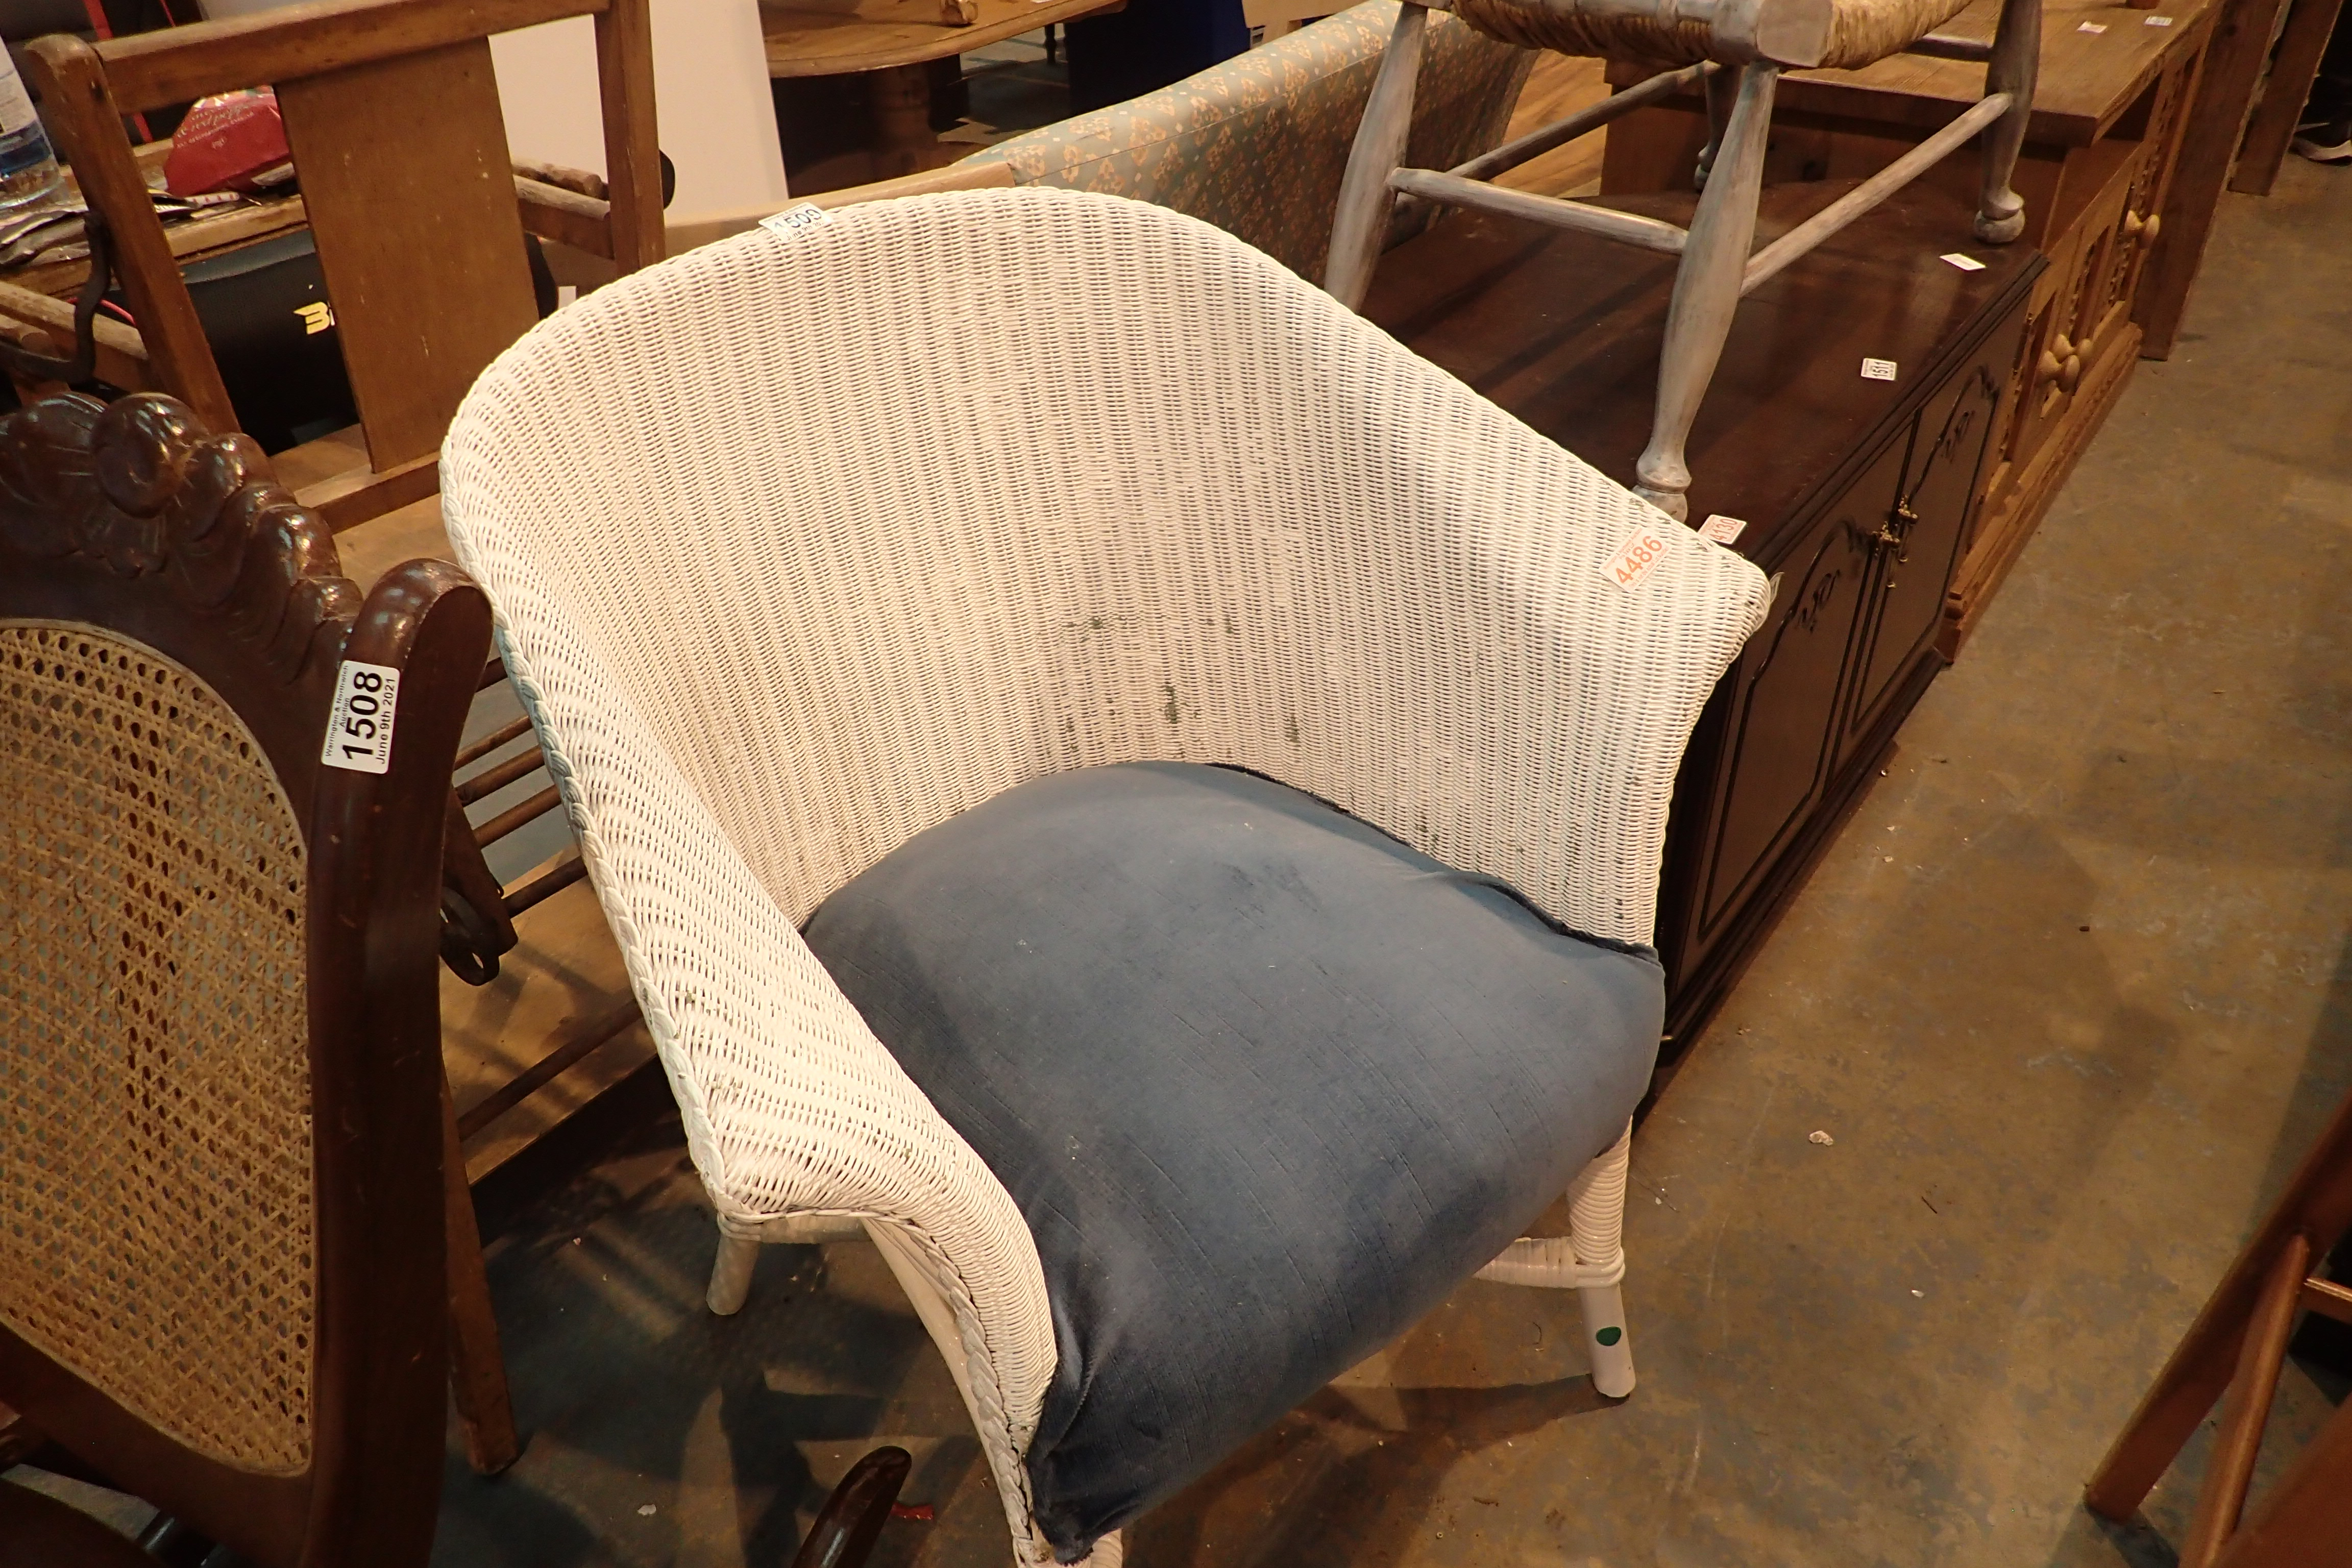 Lloyd loom style chair. Not available for in-house P&P, contact Paul O'Hea at Mailboxes on 01925